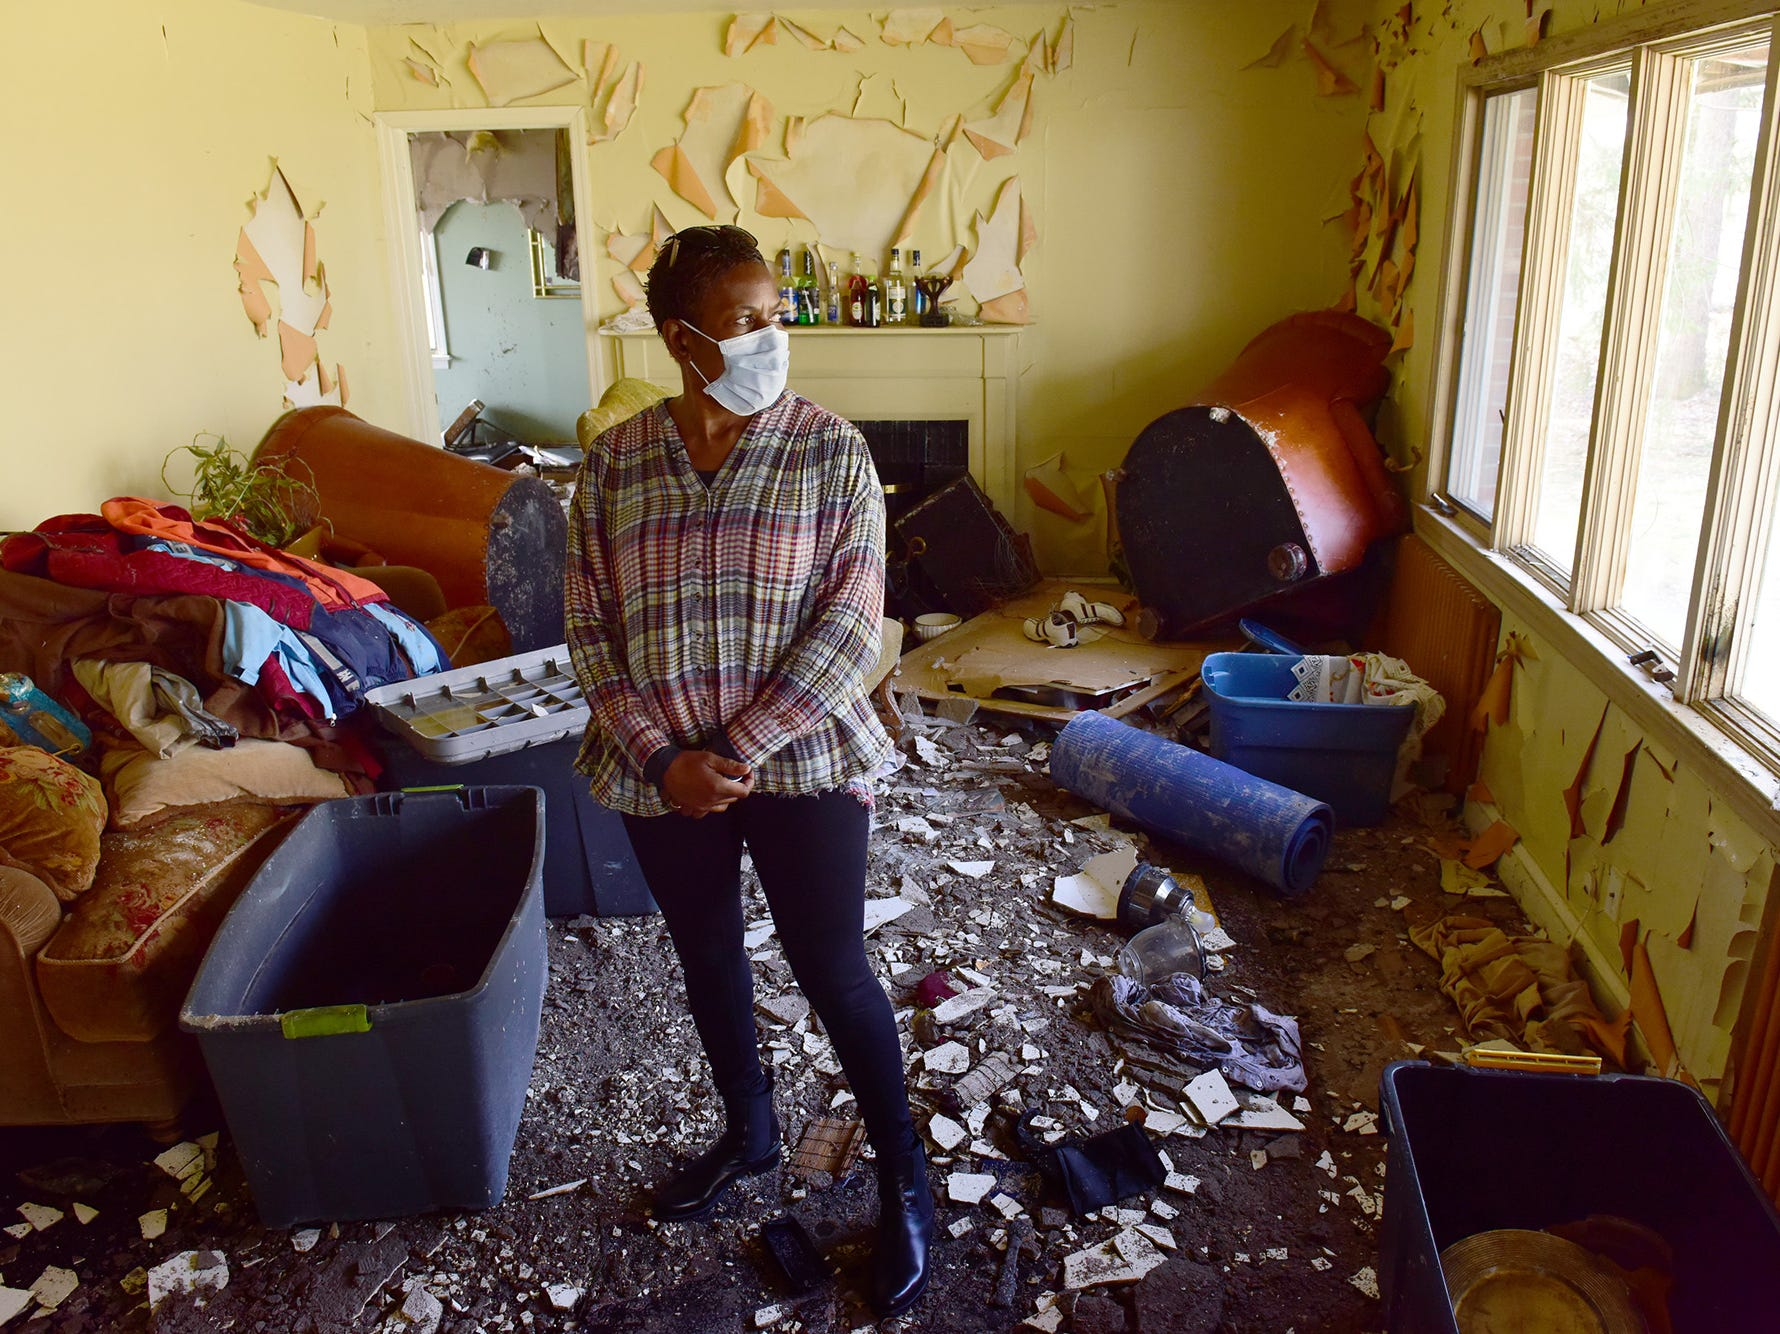 Betty Adams walks out of her burned out home in Hawthorne Wednesday morning September 27, 2017. The early morning fire destroyed her a home on Sunrise Dr. in Hawthorne, on Monday morning on September 24, 2018.